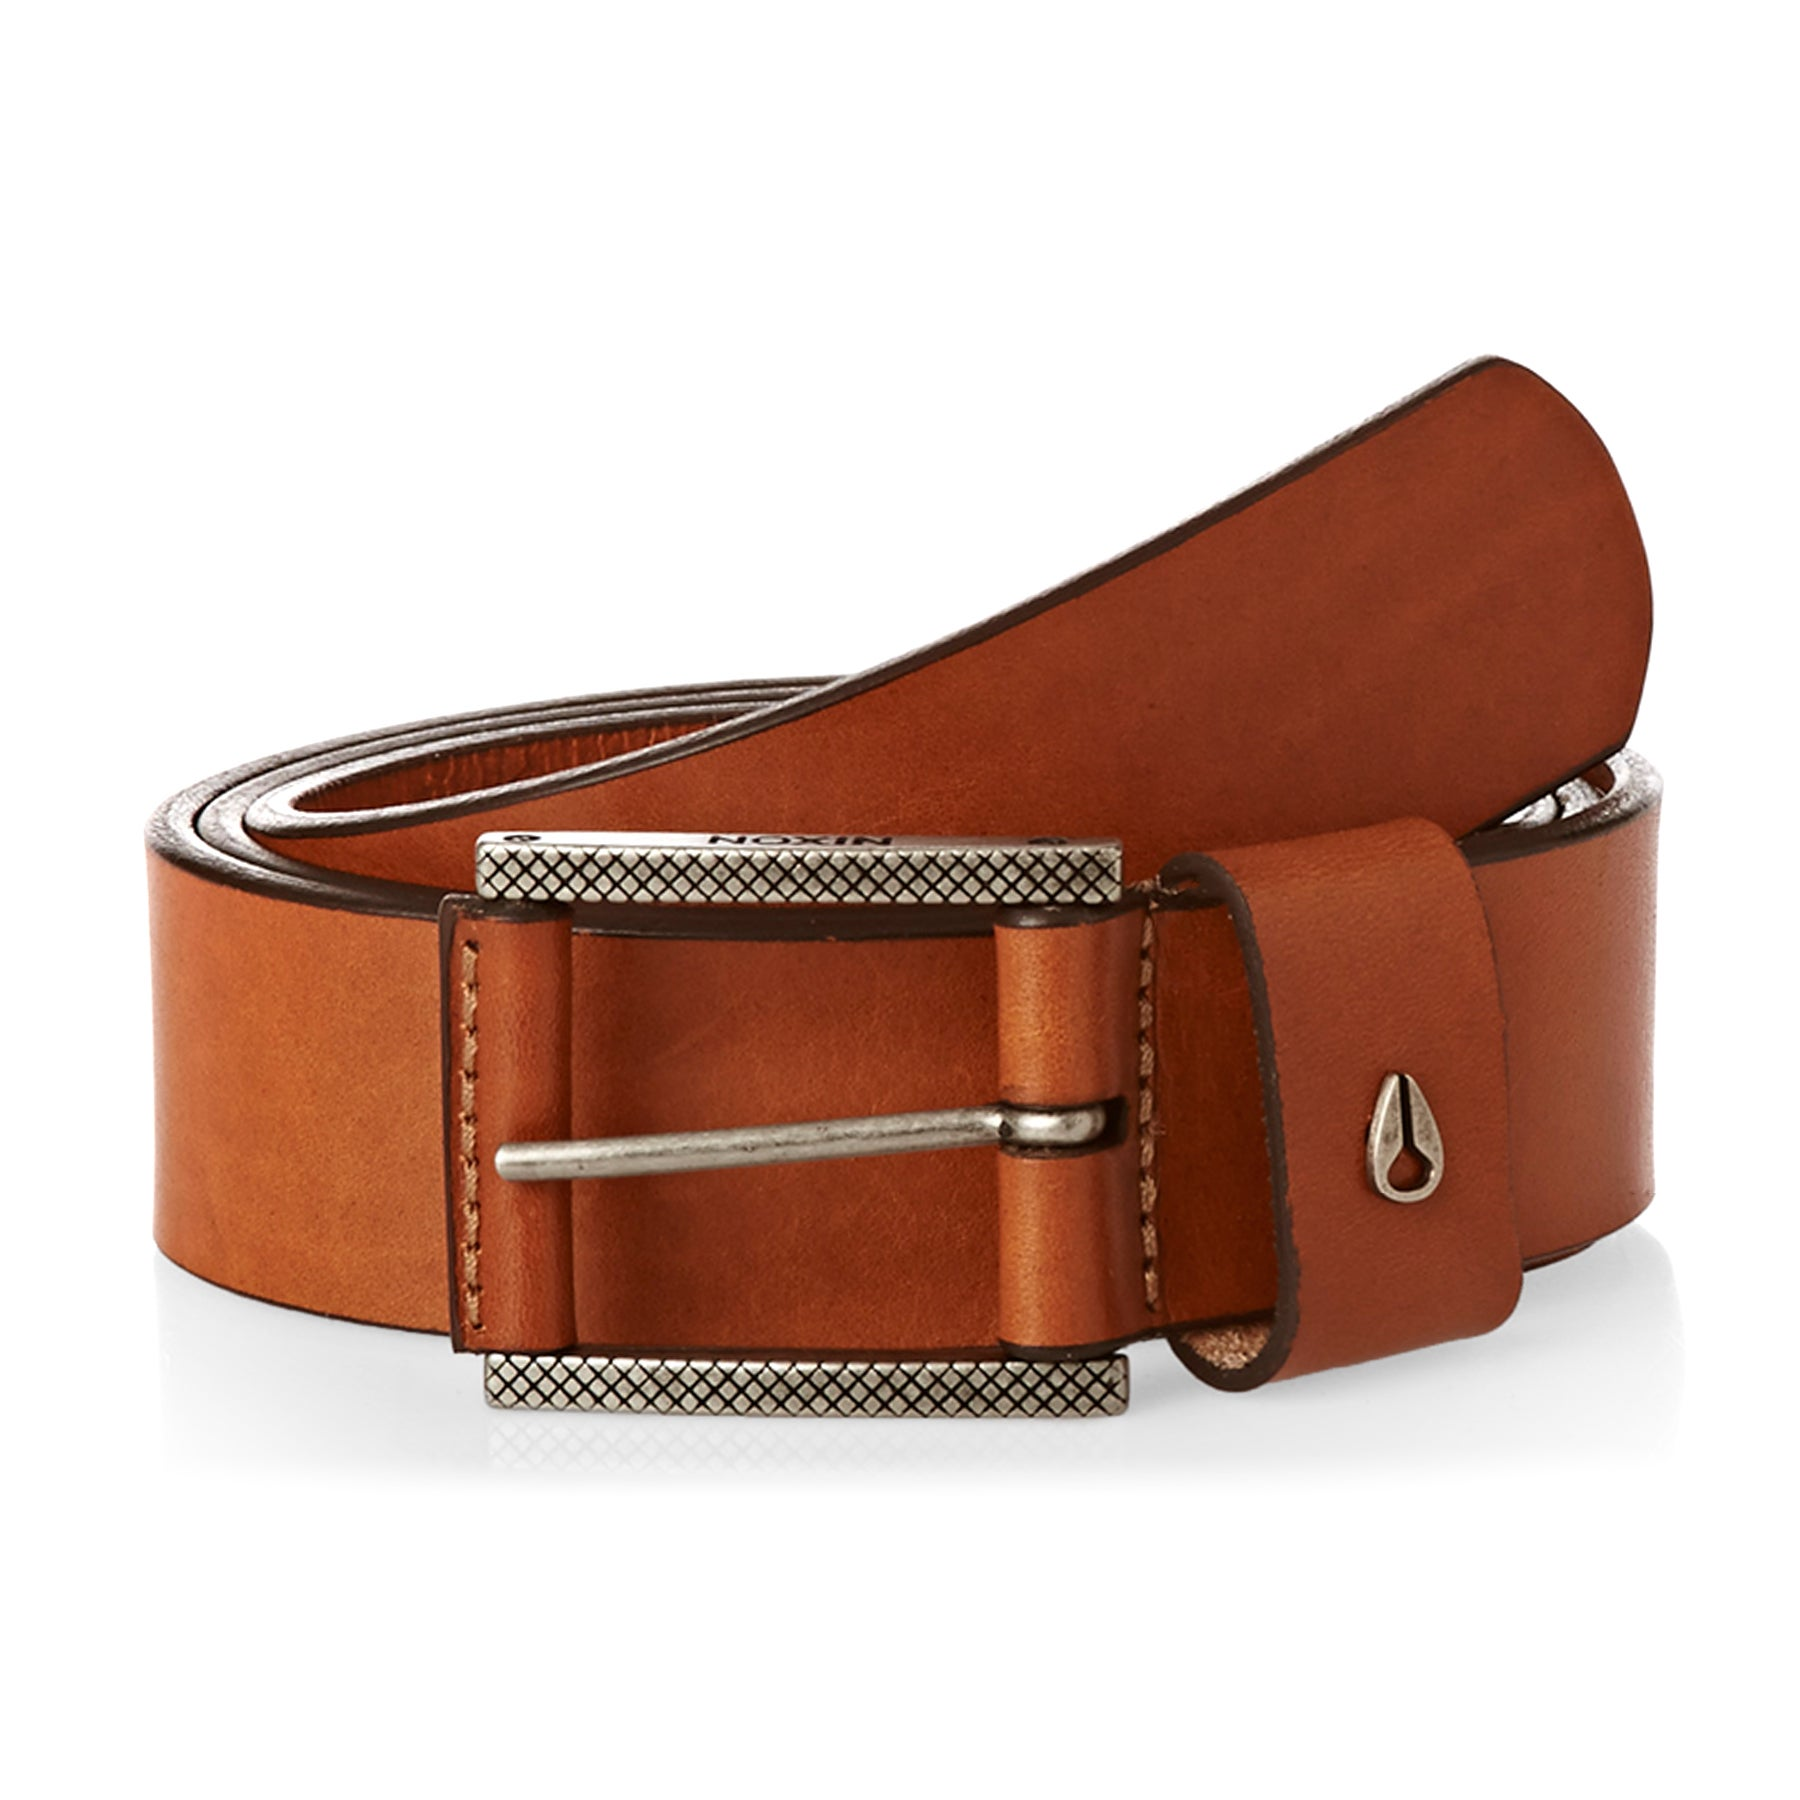 Nixon Americana II Leather Belt - Saddle